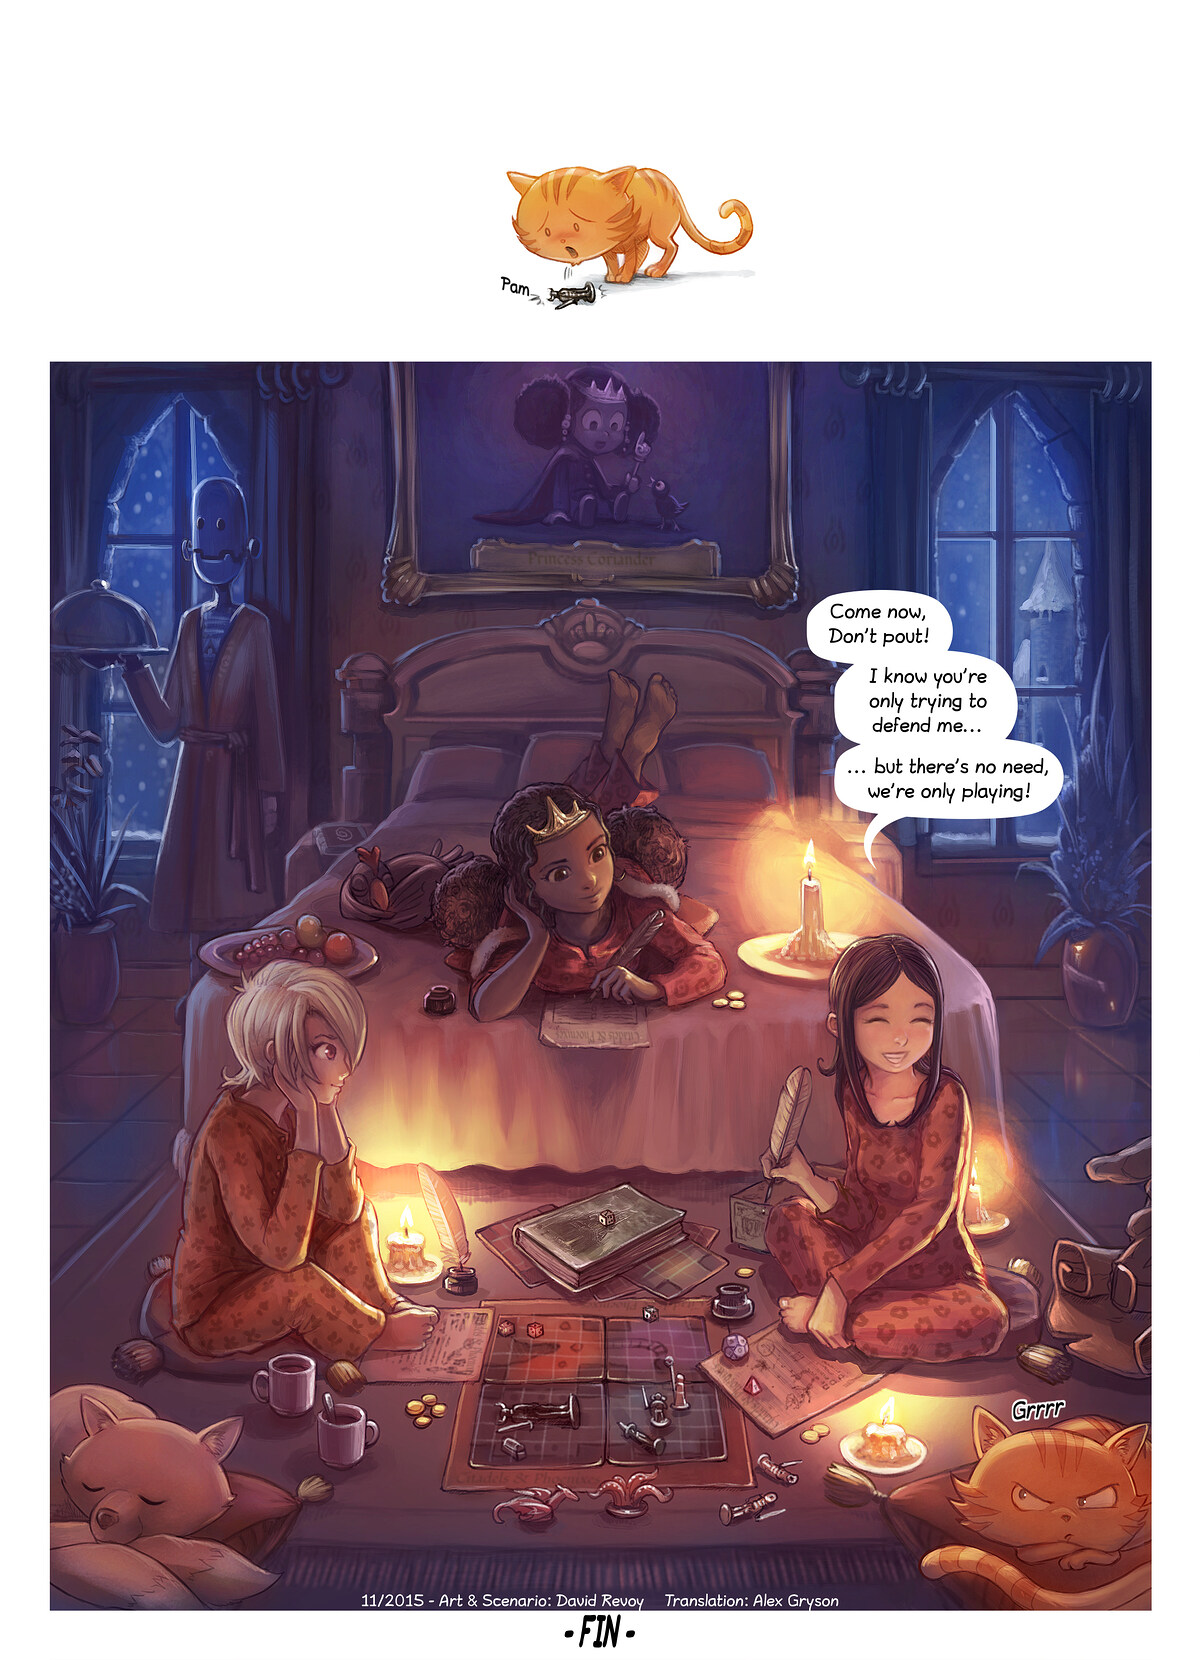 A webcomic page of Pepper&Carrot, Folg 13 [ns], Siet 6